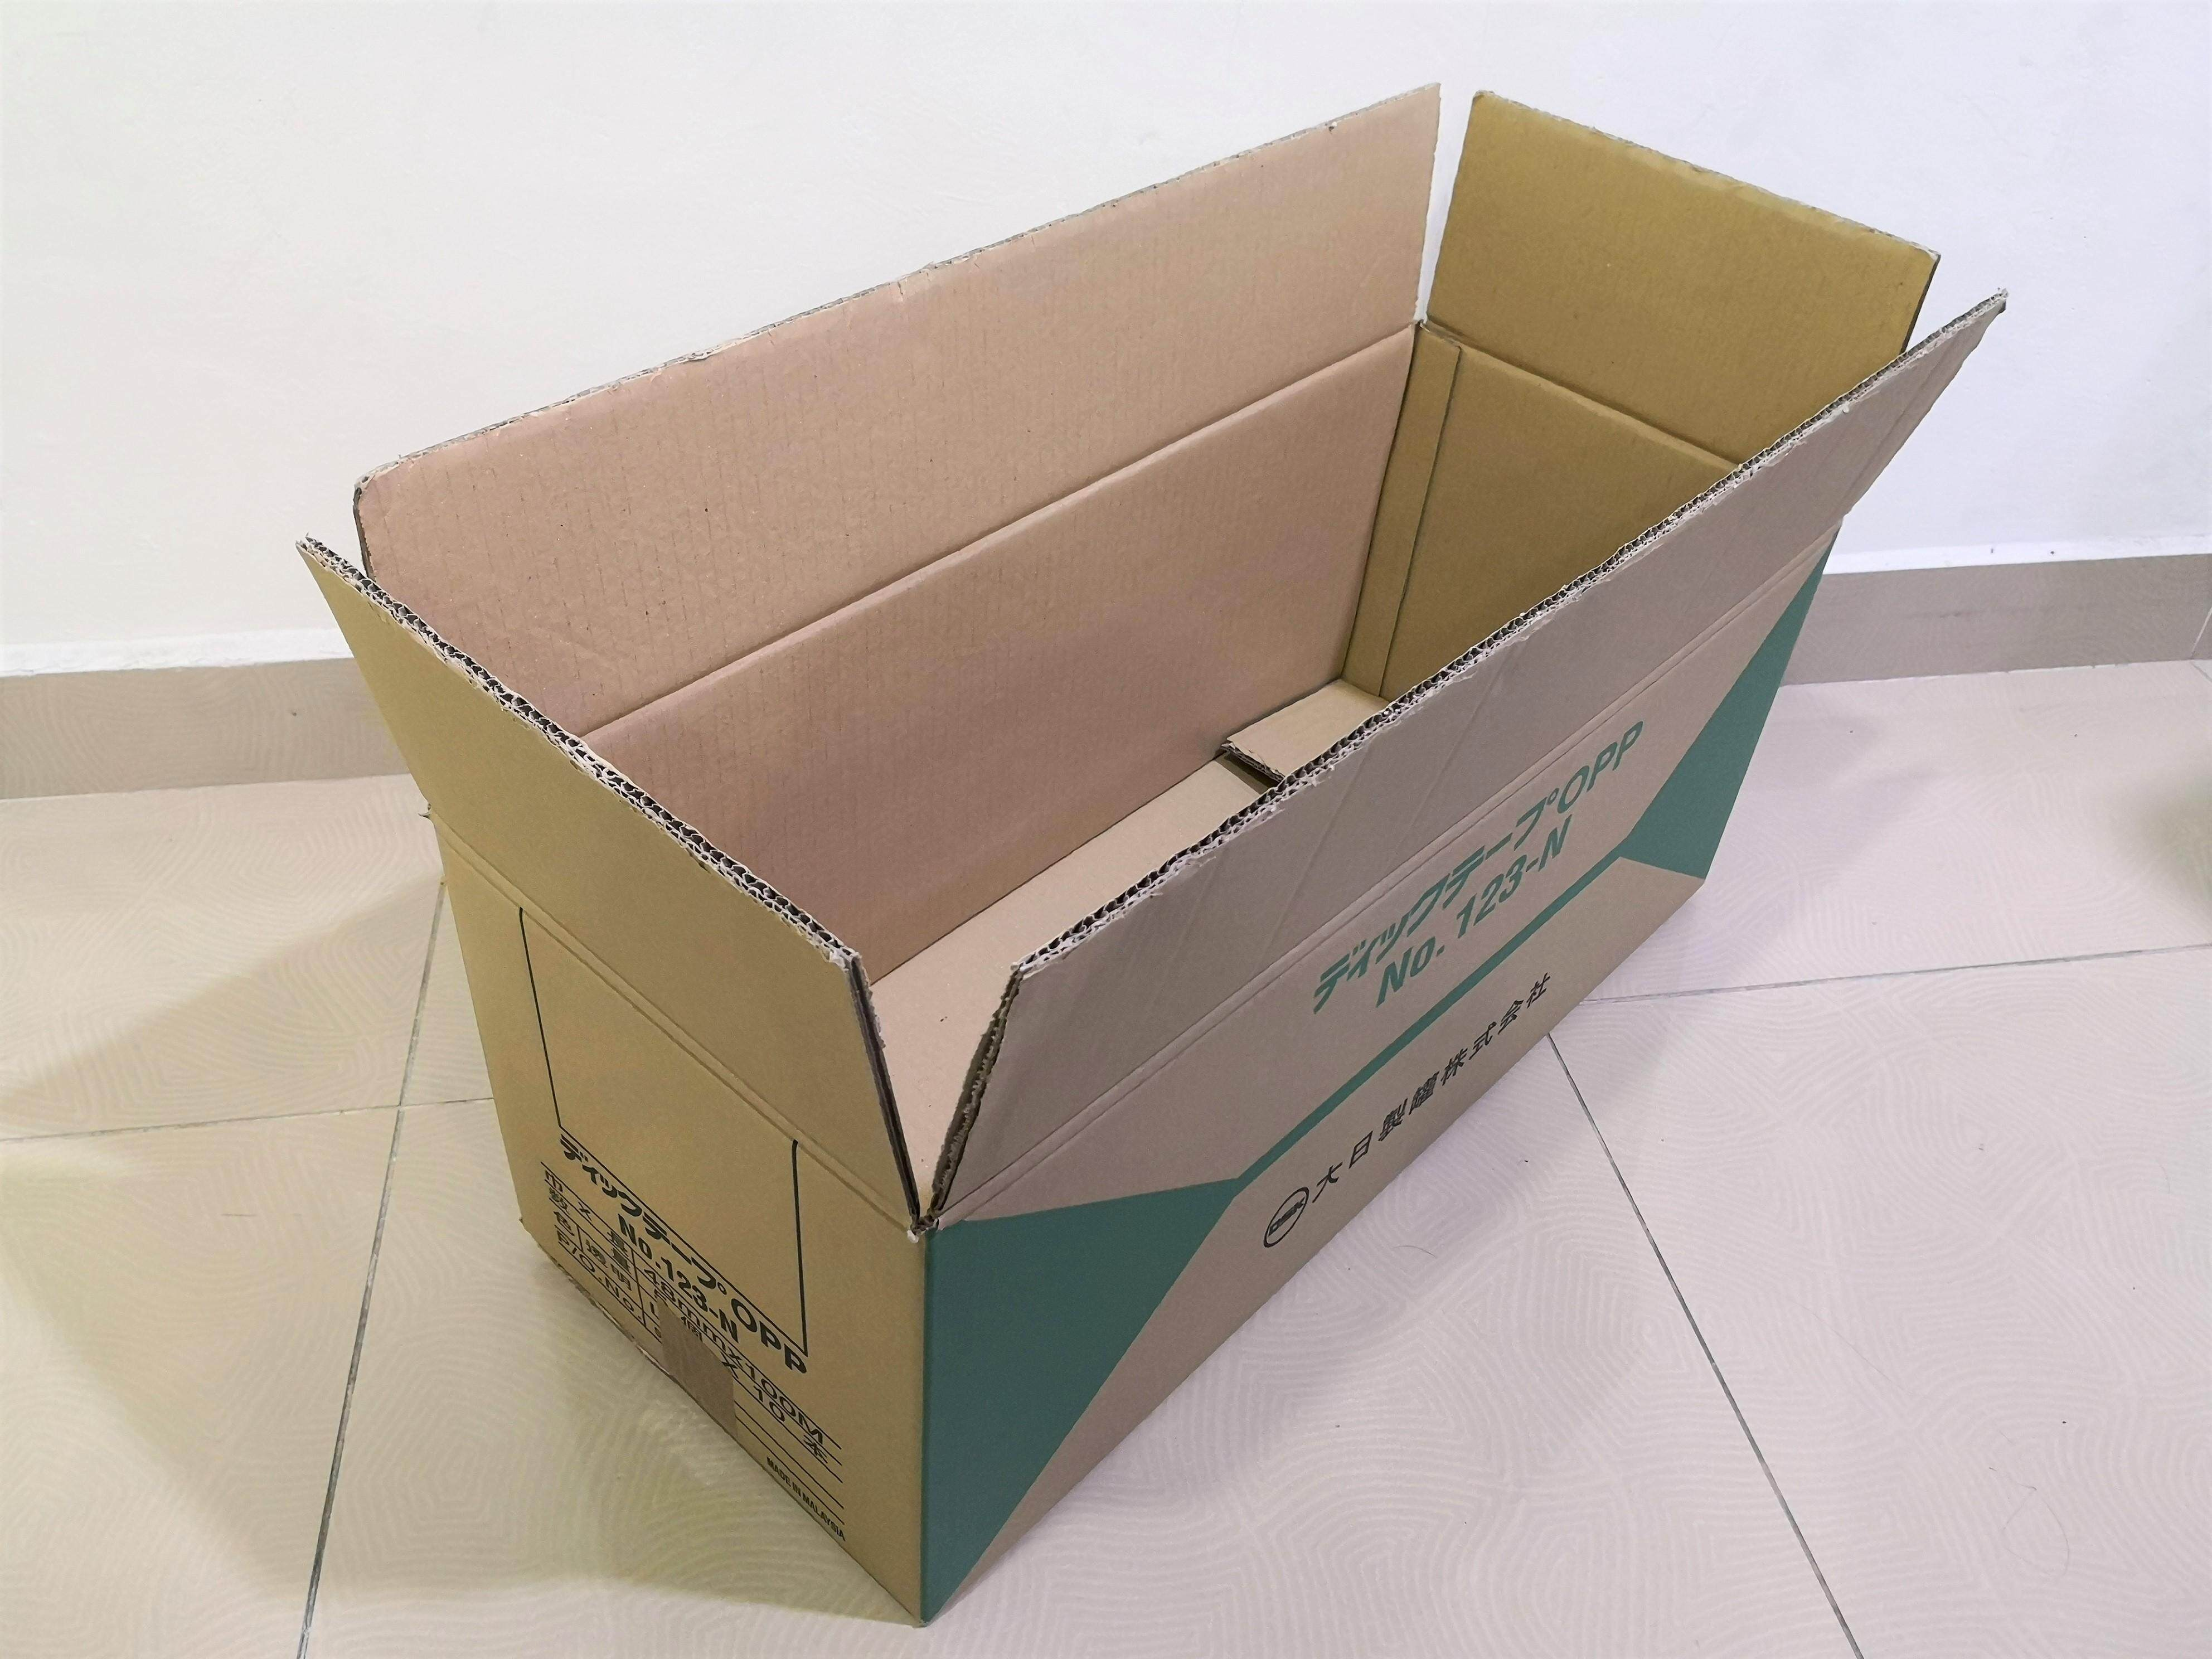 10pcs Printed Carton Boxes (L635 x W265 x H250mm)